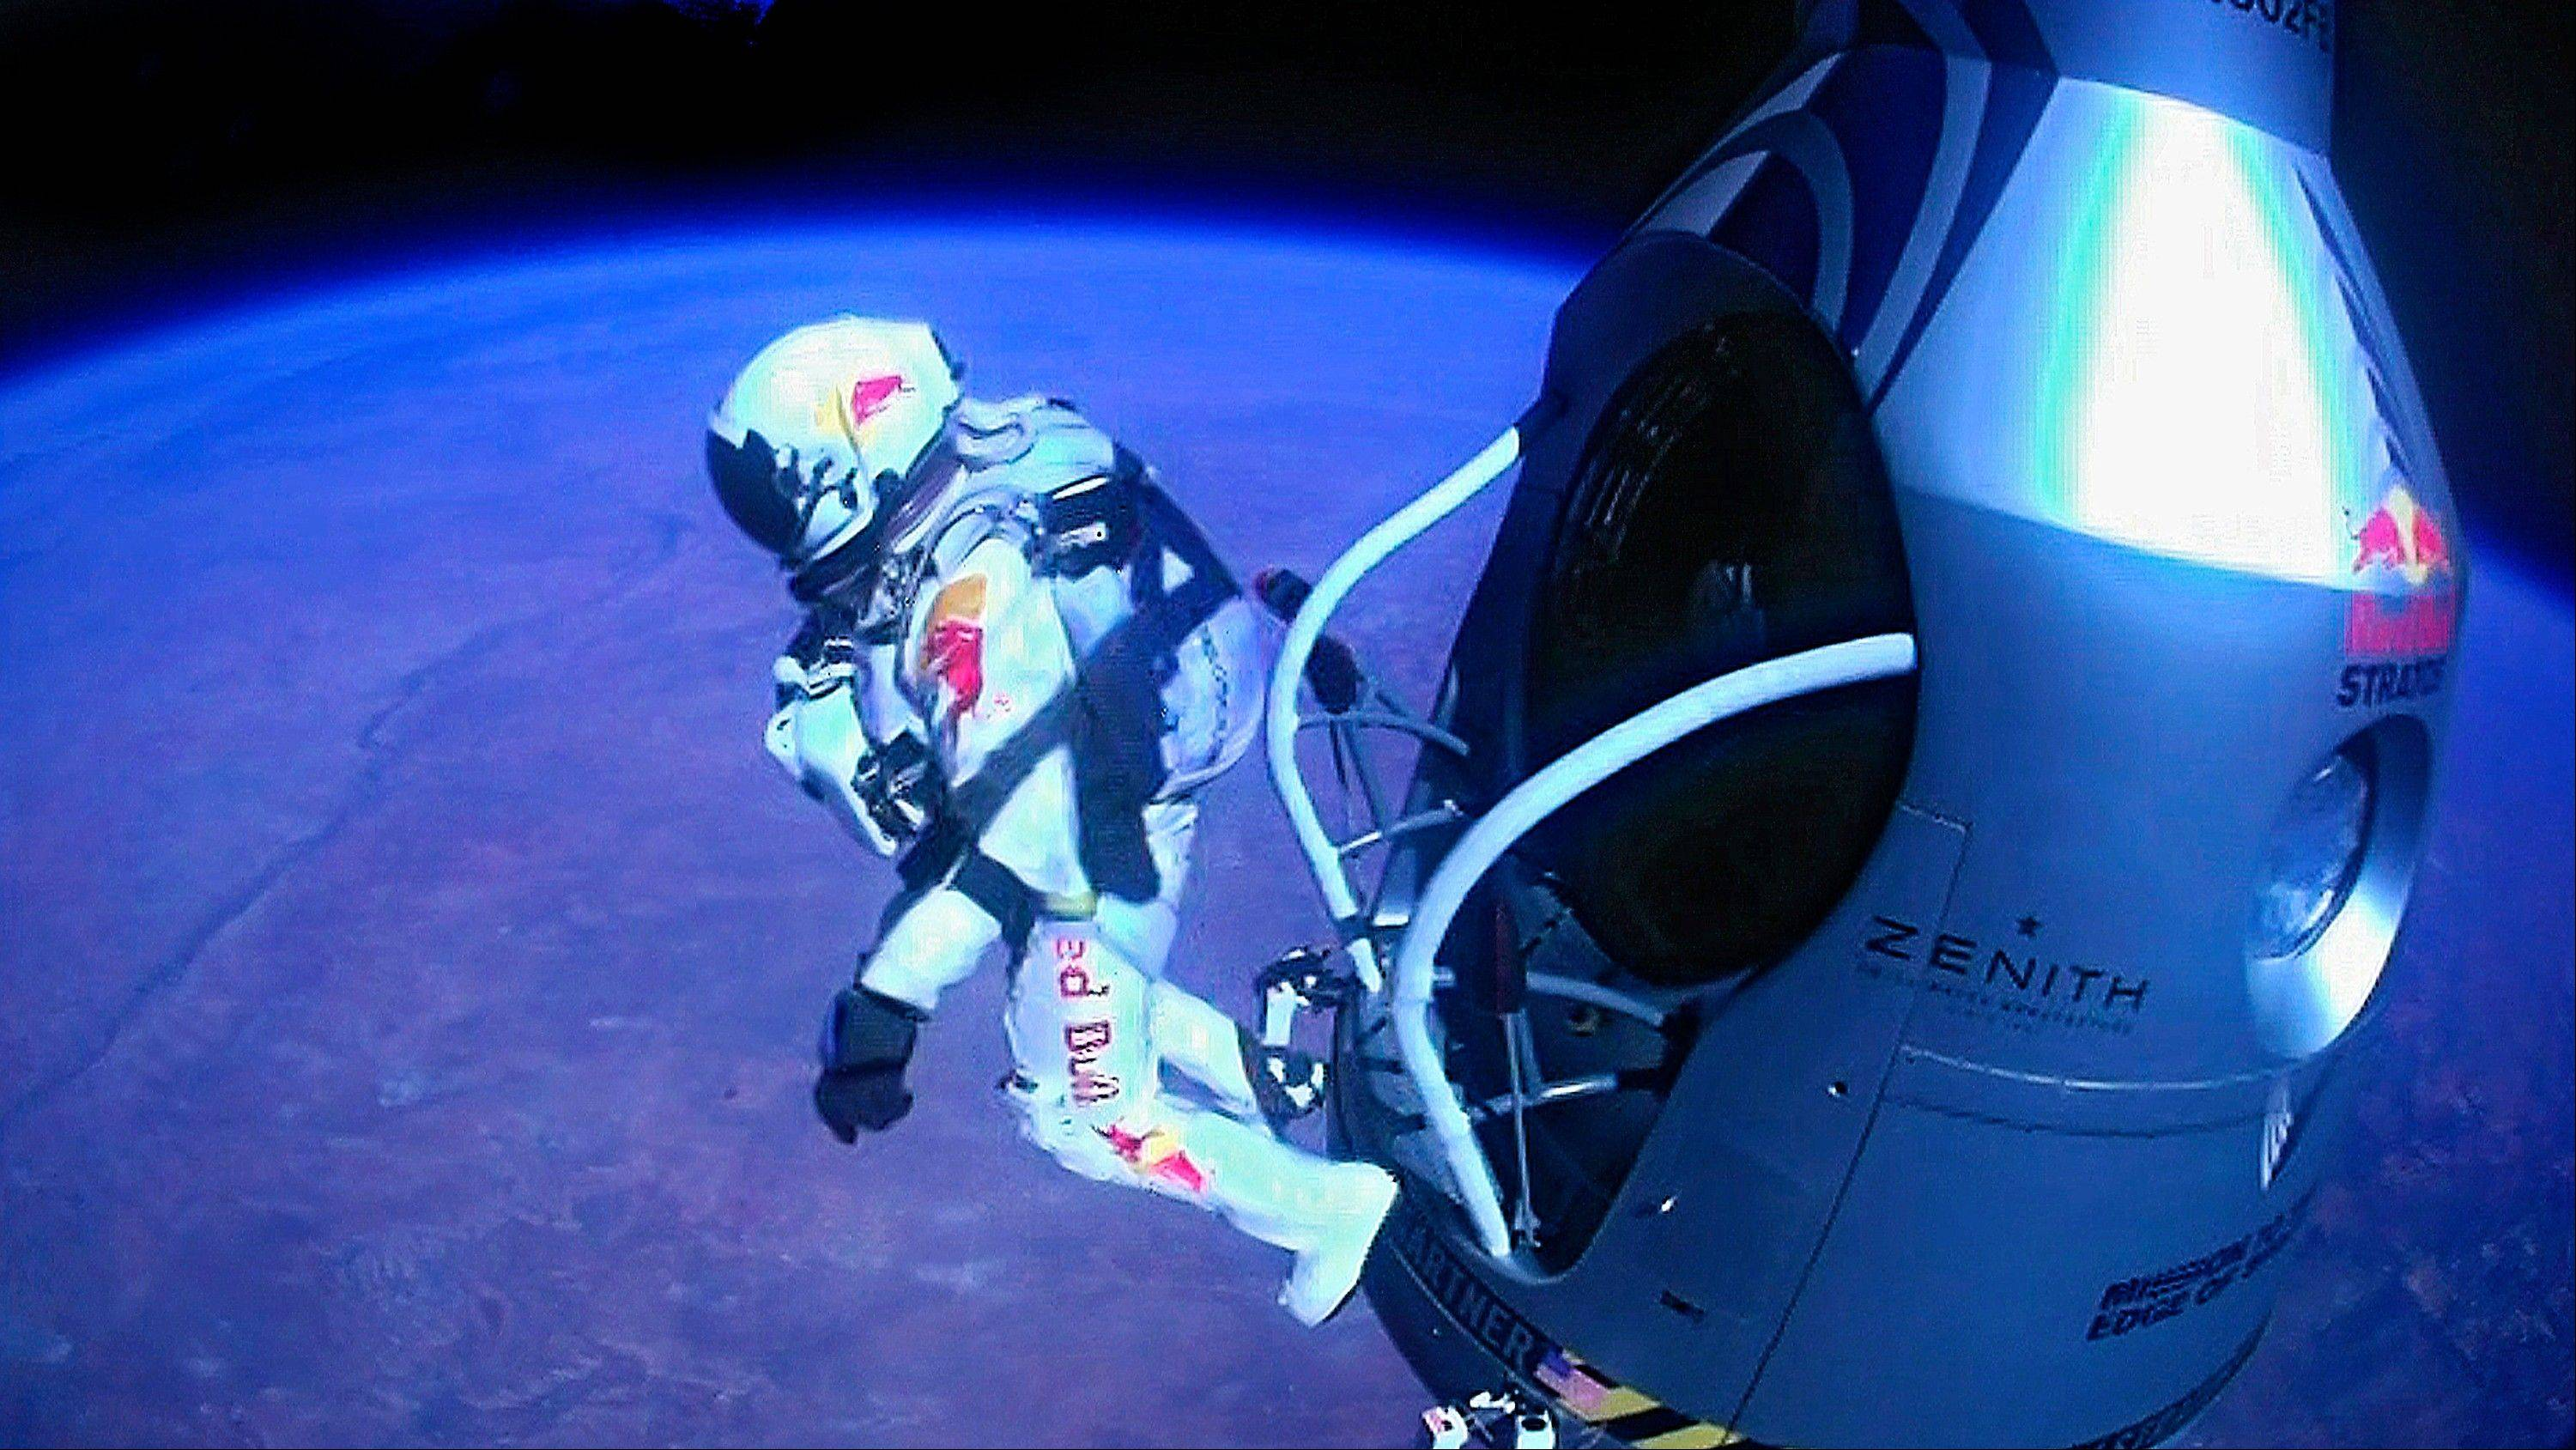 Felix Baumgartner jumps out of the capsule Oct. 14. He reached 843.6 mph. That�s equivalent to Mach 1.25, or 1.25 times the speed of sound. His top speed initially was estimated last October at 834 mph, or Mach 1.24.